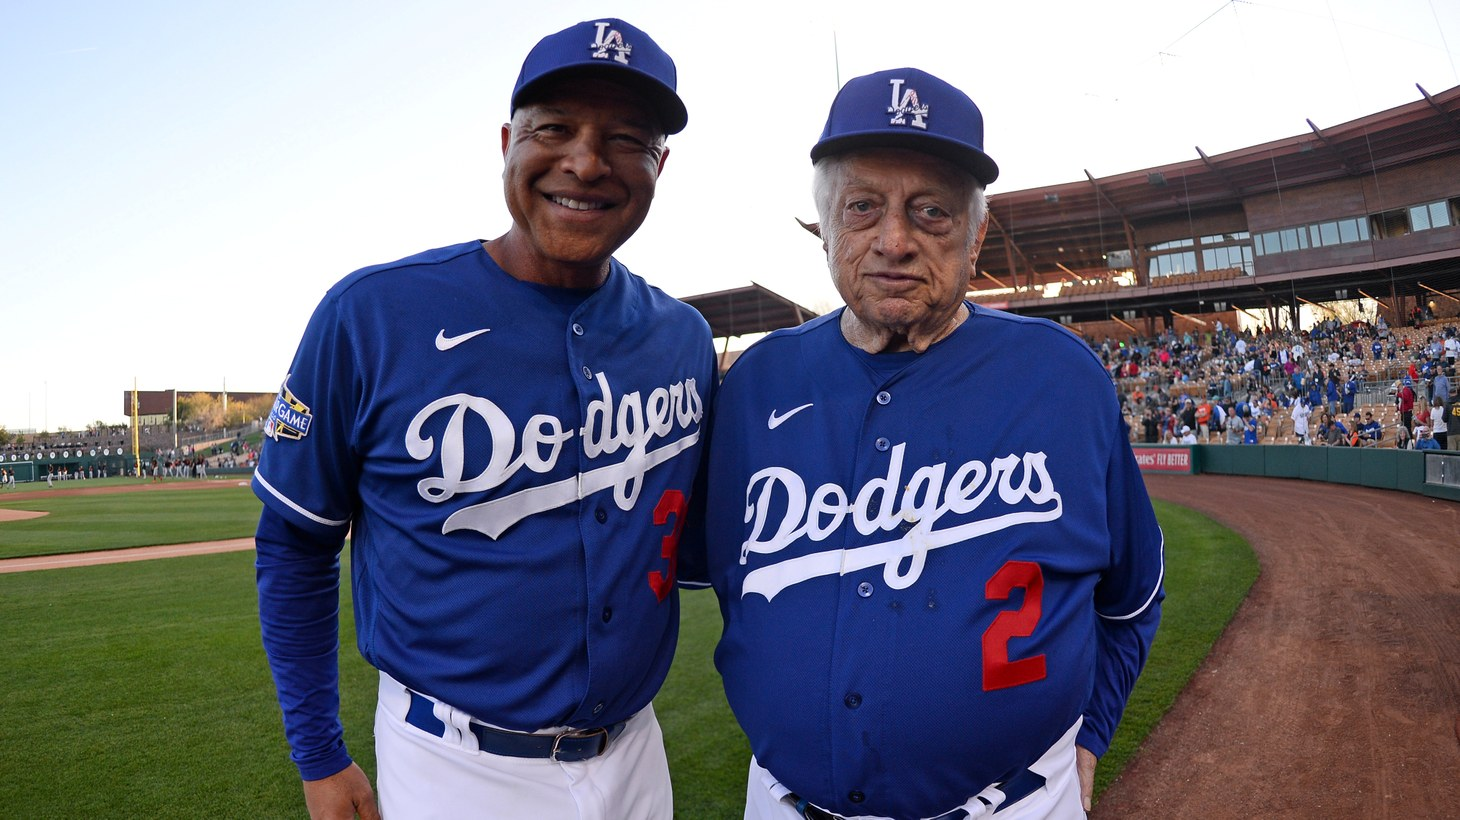 Los Angeles Dodgers former manager Tommy Lasorda (2) poses for a photo alongside current Dodgers manager Dave Roberts (30) prior to a spring training game against the San Francisco Giants at Camelback Ranch. Mar 4, 2020. Phoenix, Arizona, USA.